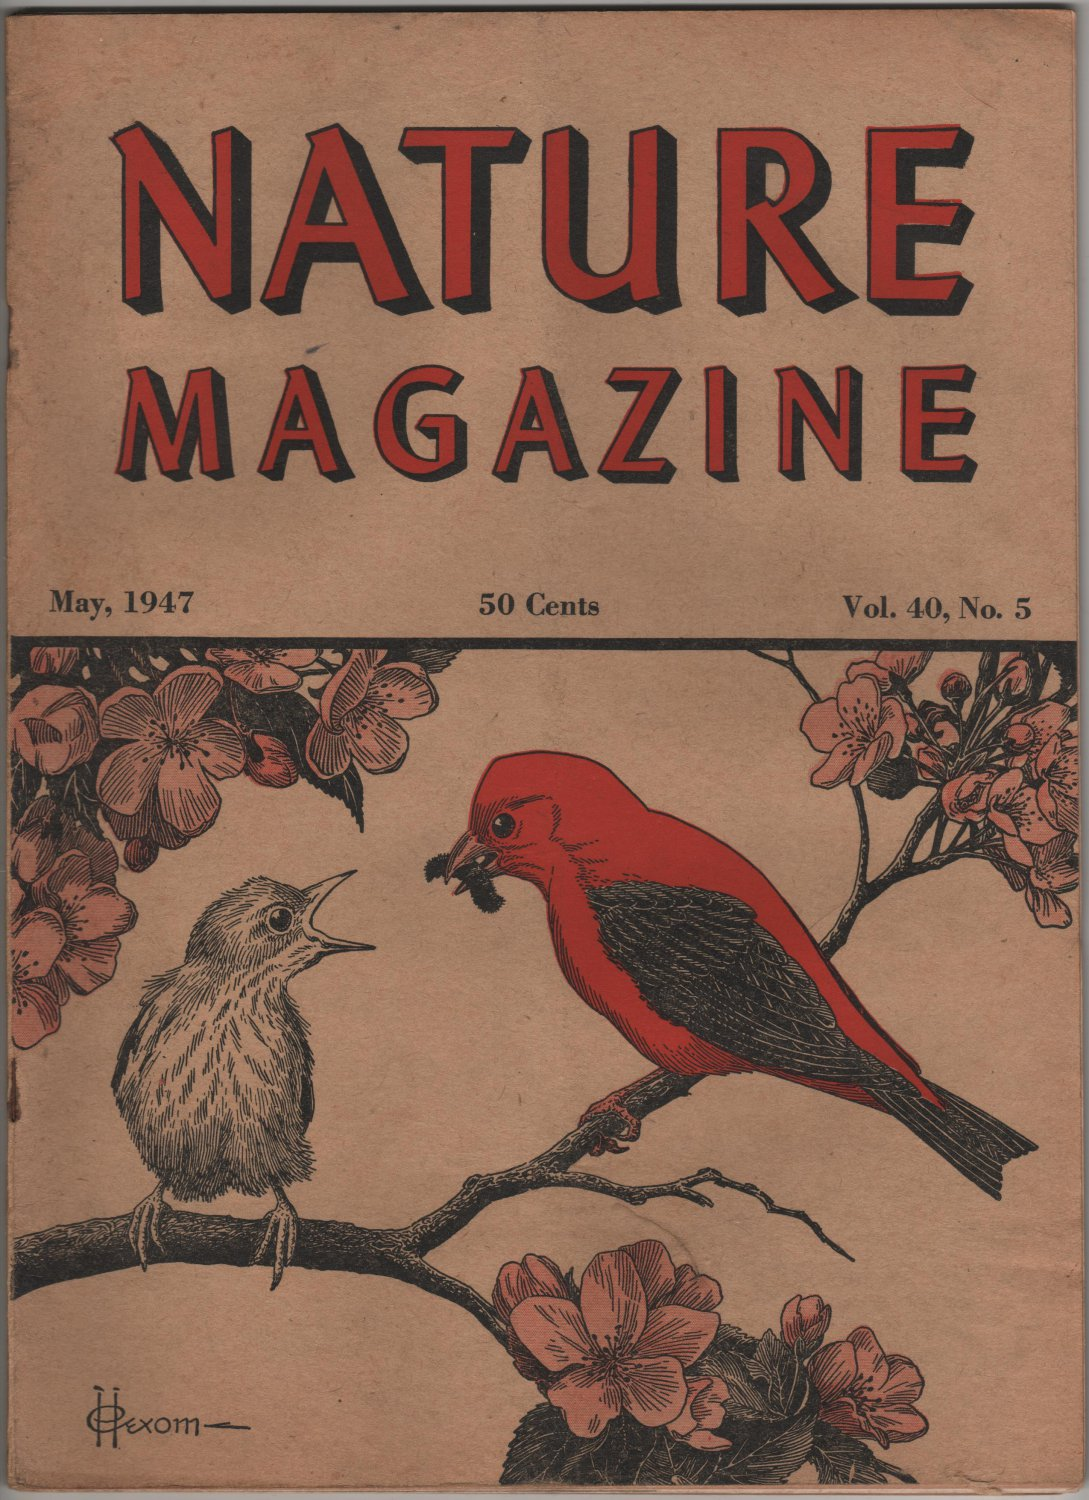 Nature Magazine, Scarlet Tanager, Red Hexom Cover c.1947